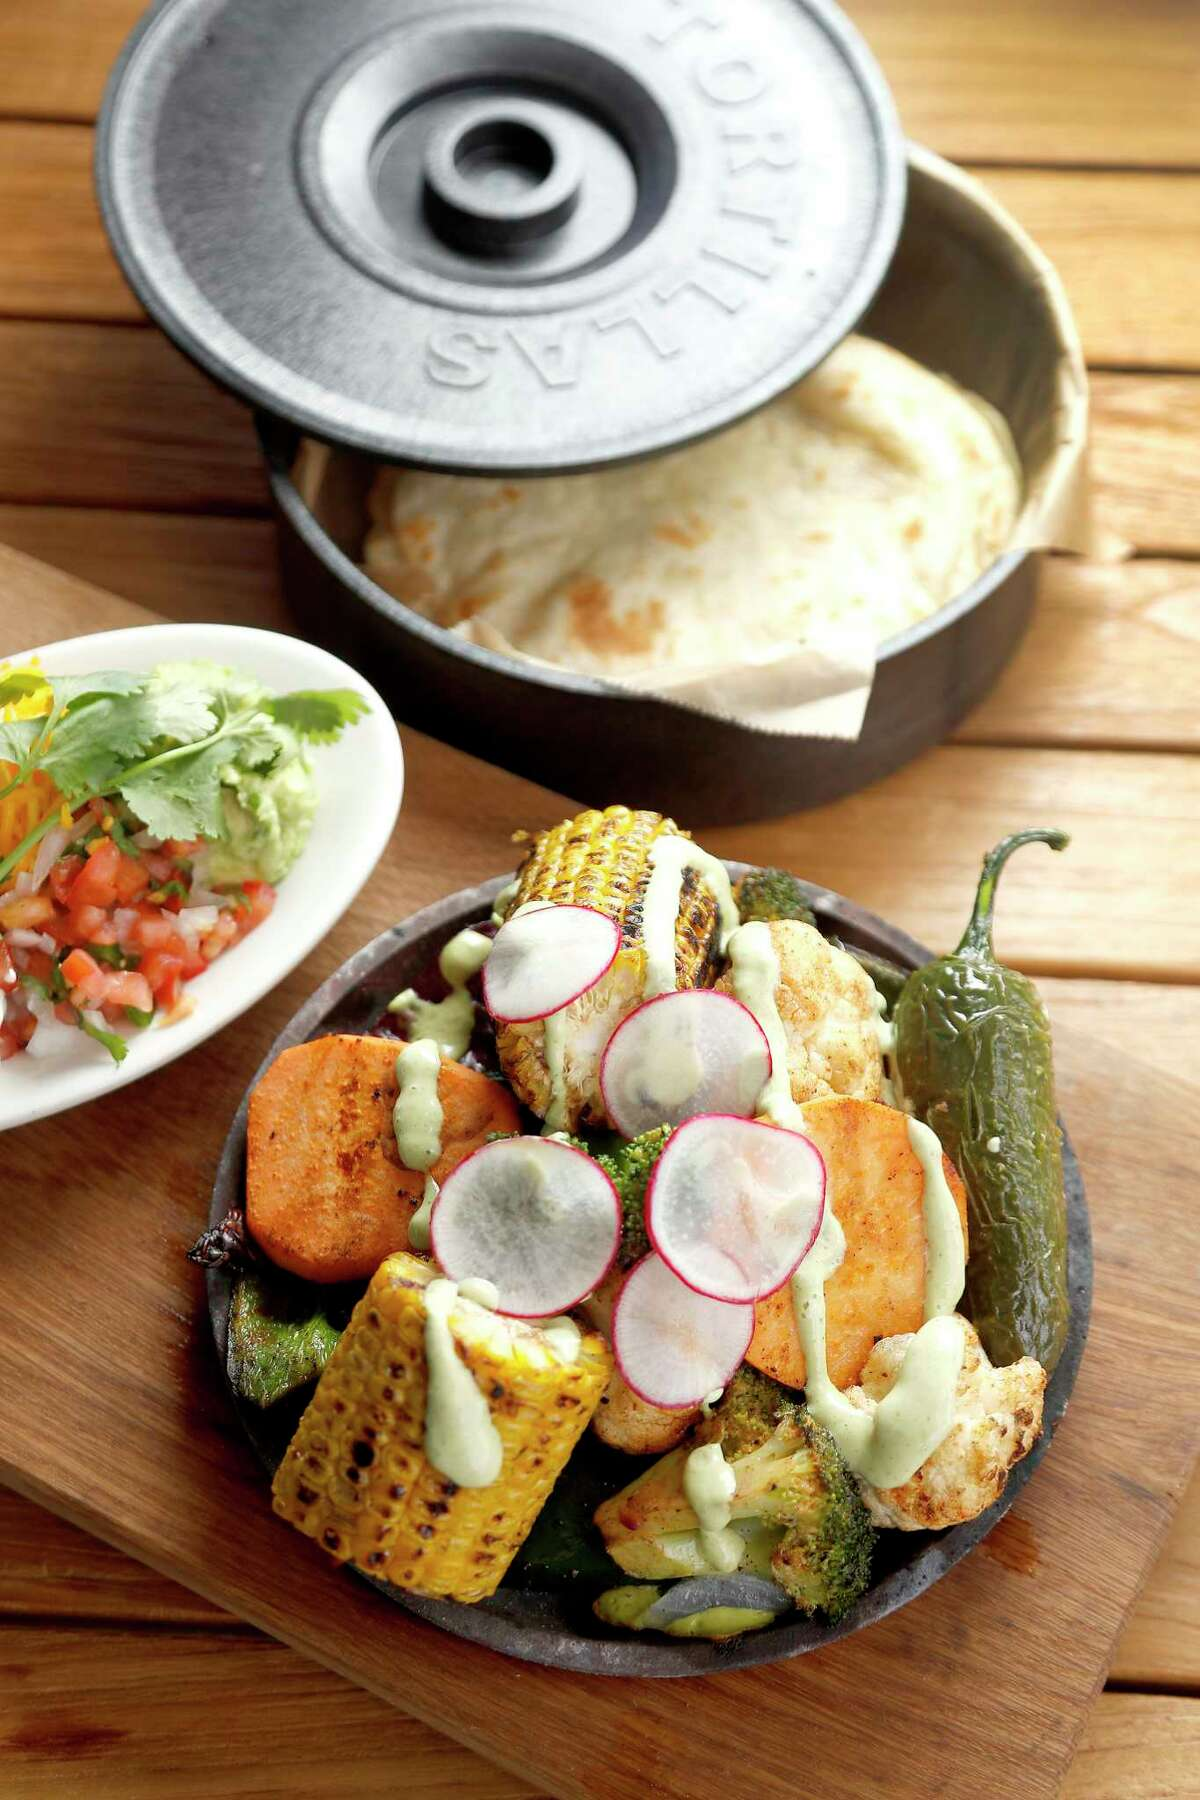 Vegetable Fajitas; cauliflower, cabbage, corn, poblano, root vegetables, and avocado crema avaiable at Superica.